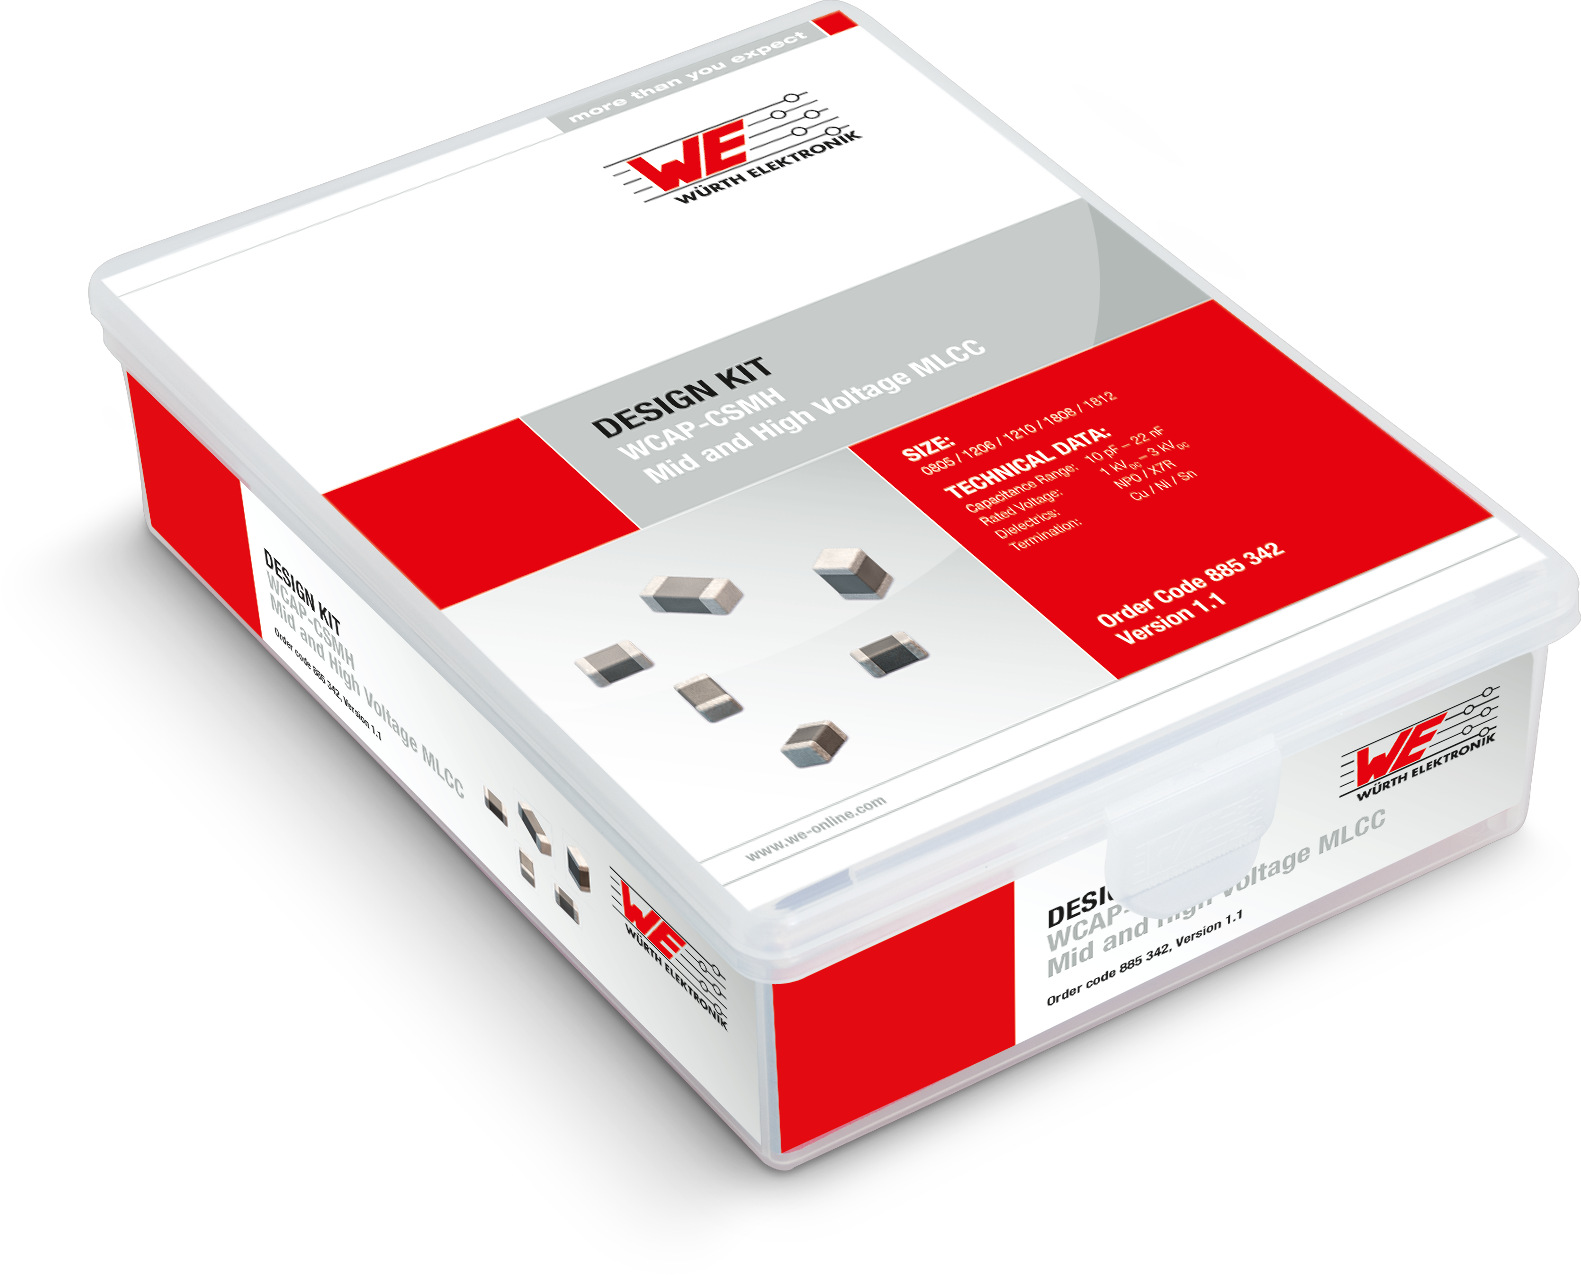 Design Kit WCAP-CSMH Mid and High Voltage MLC Produktbild